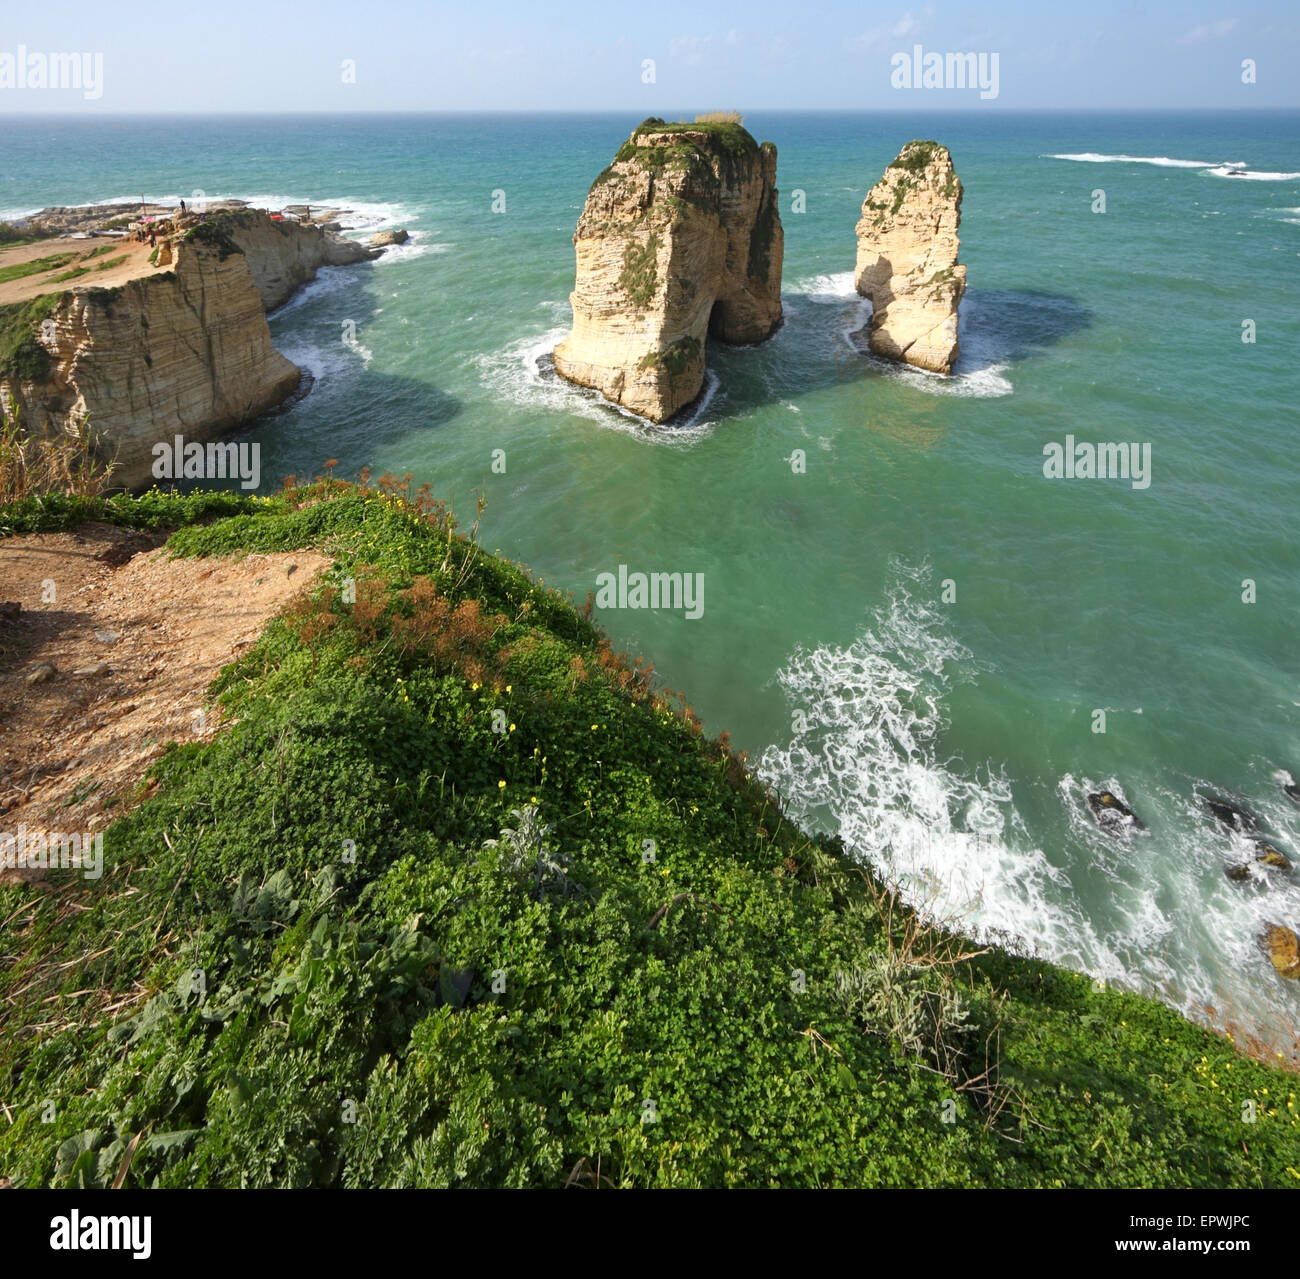 Beirut Raouche - Stock Image